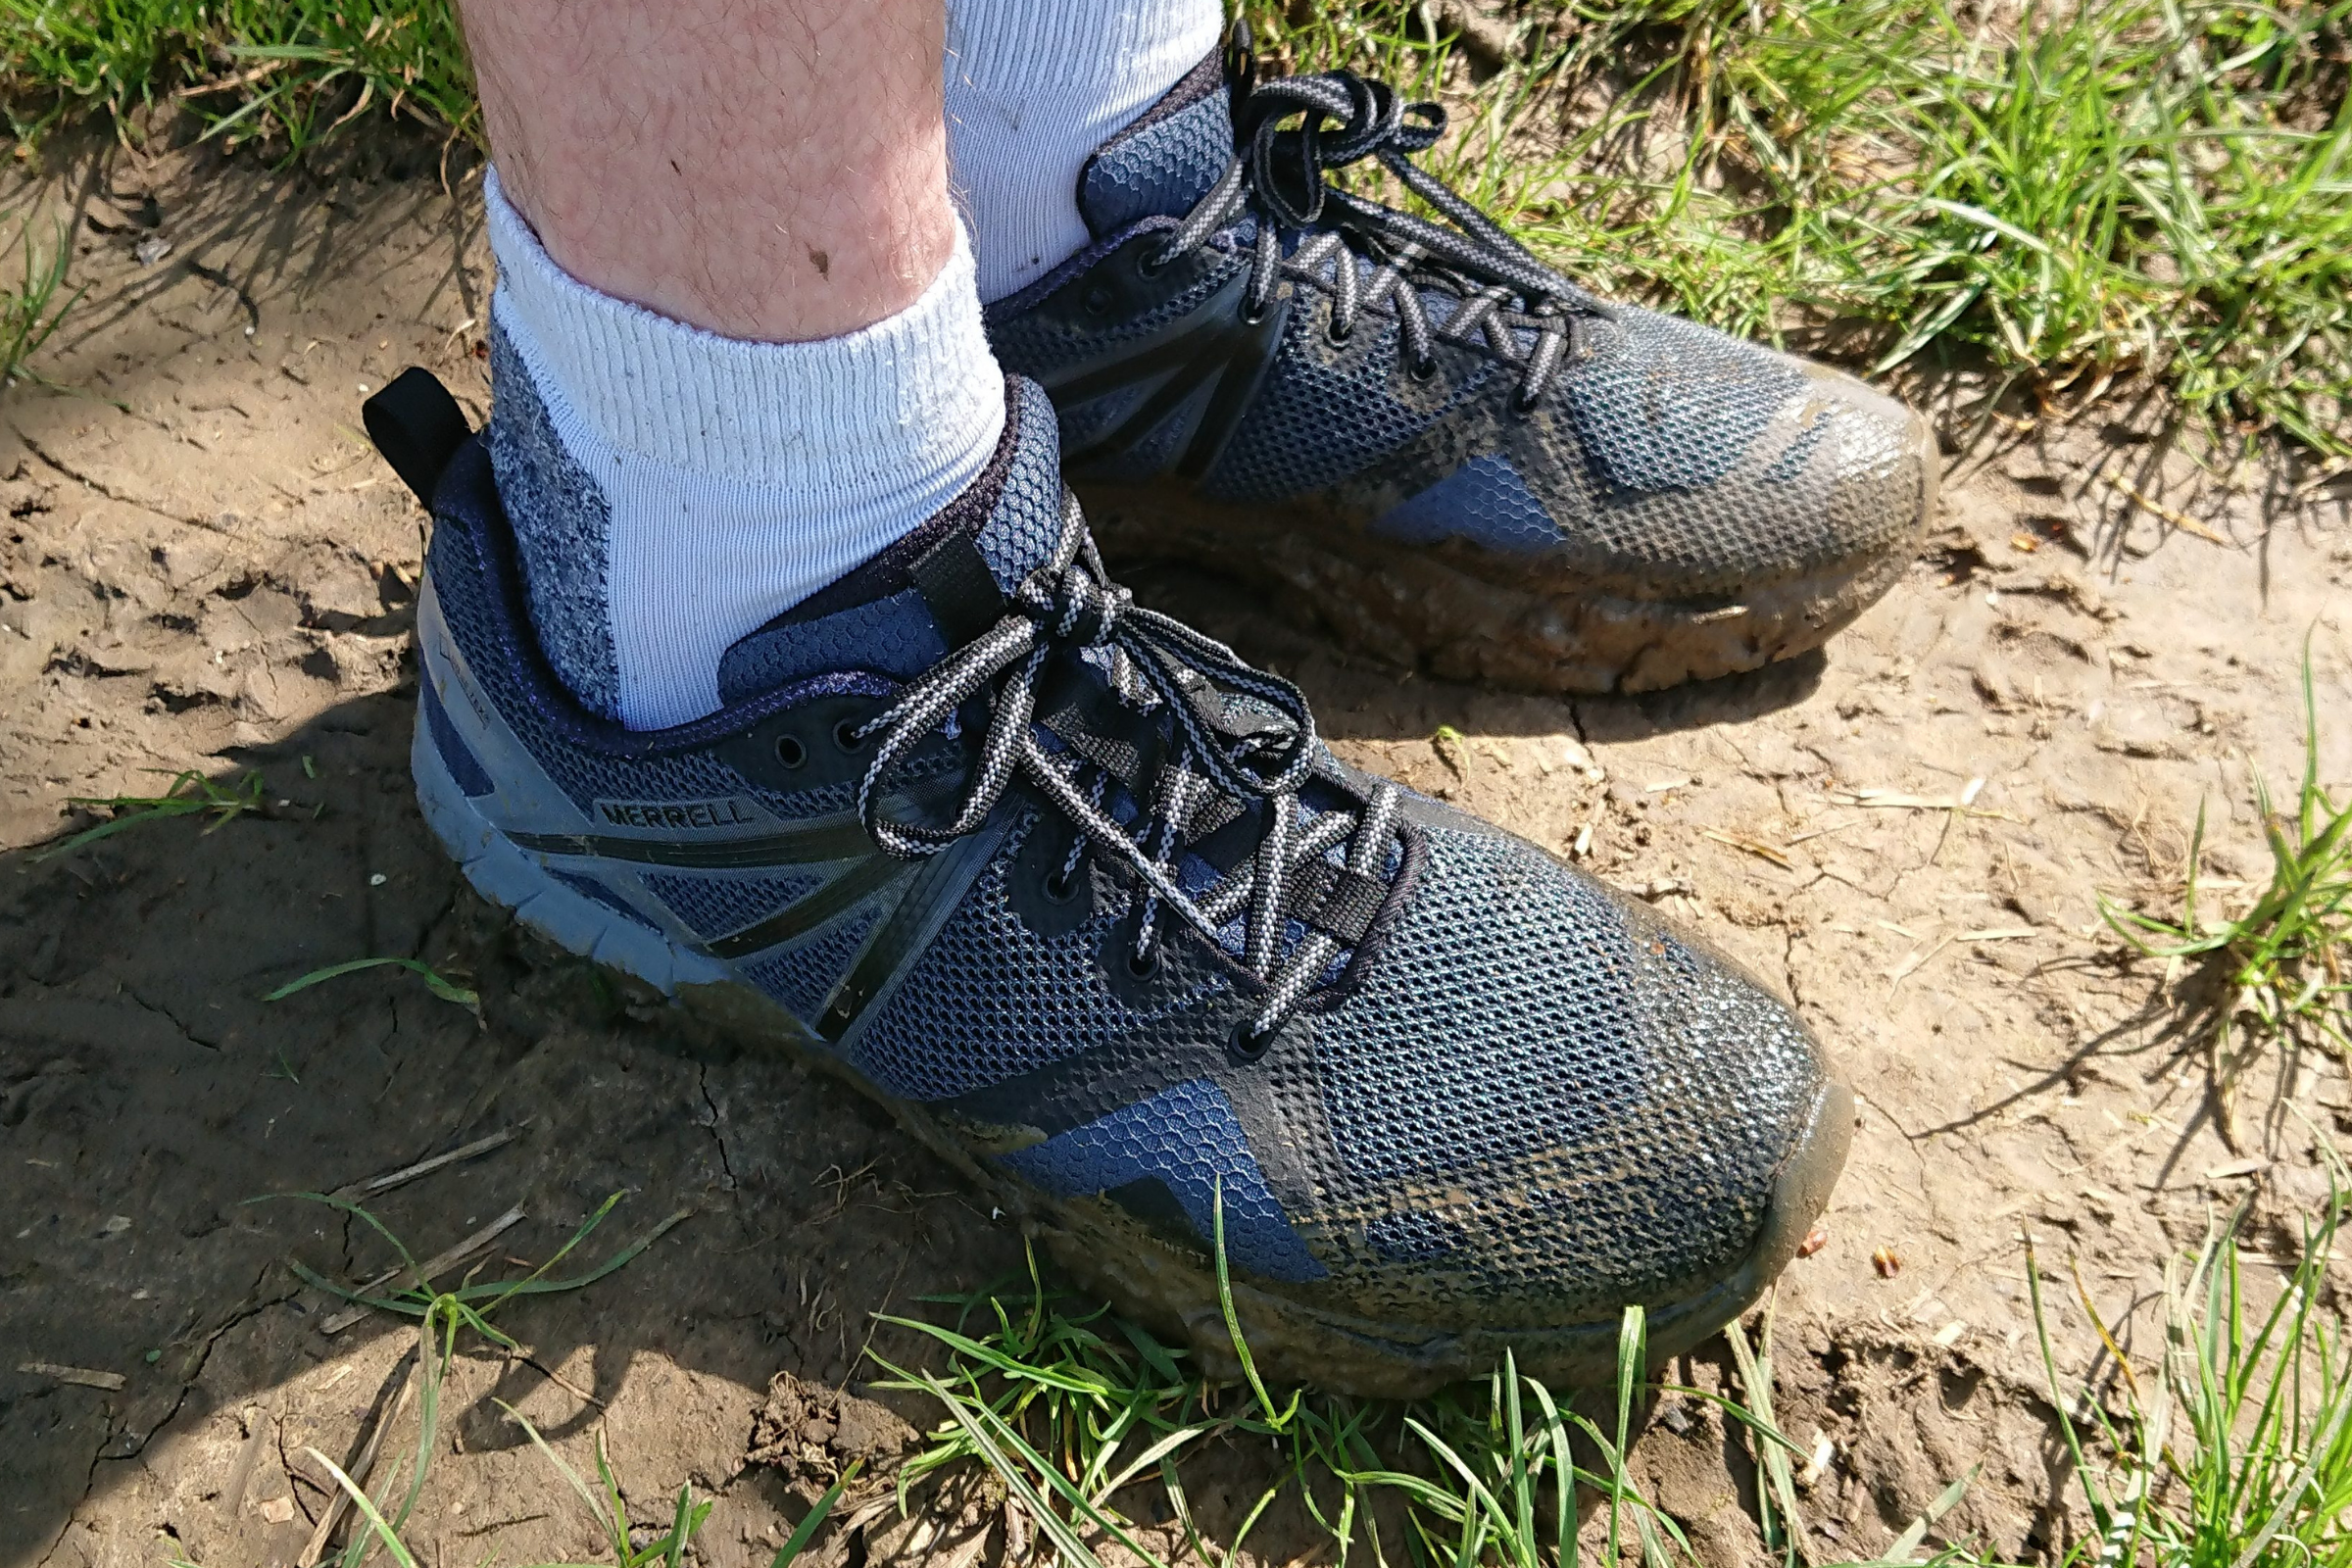 Merrell MQM trainers review